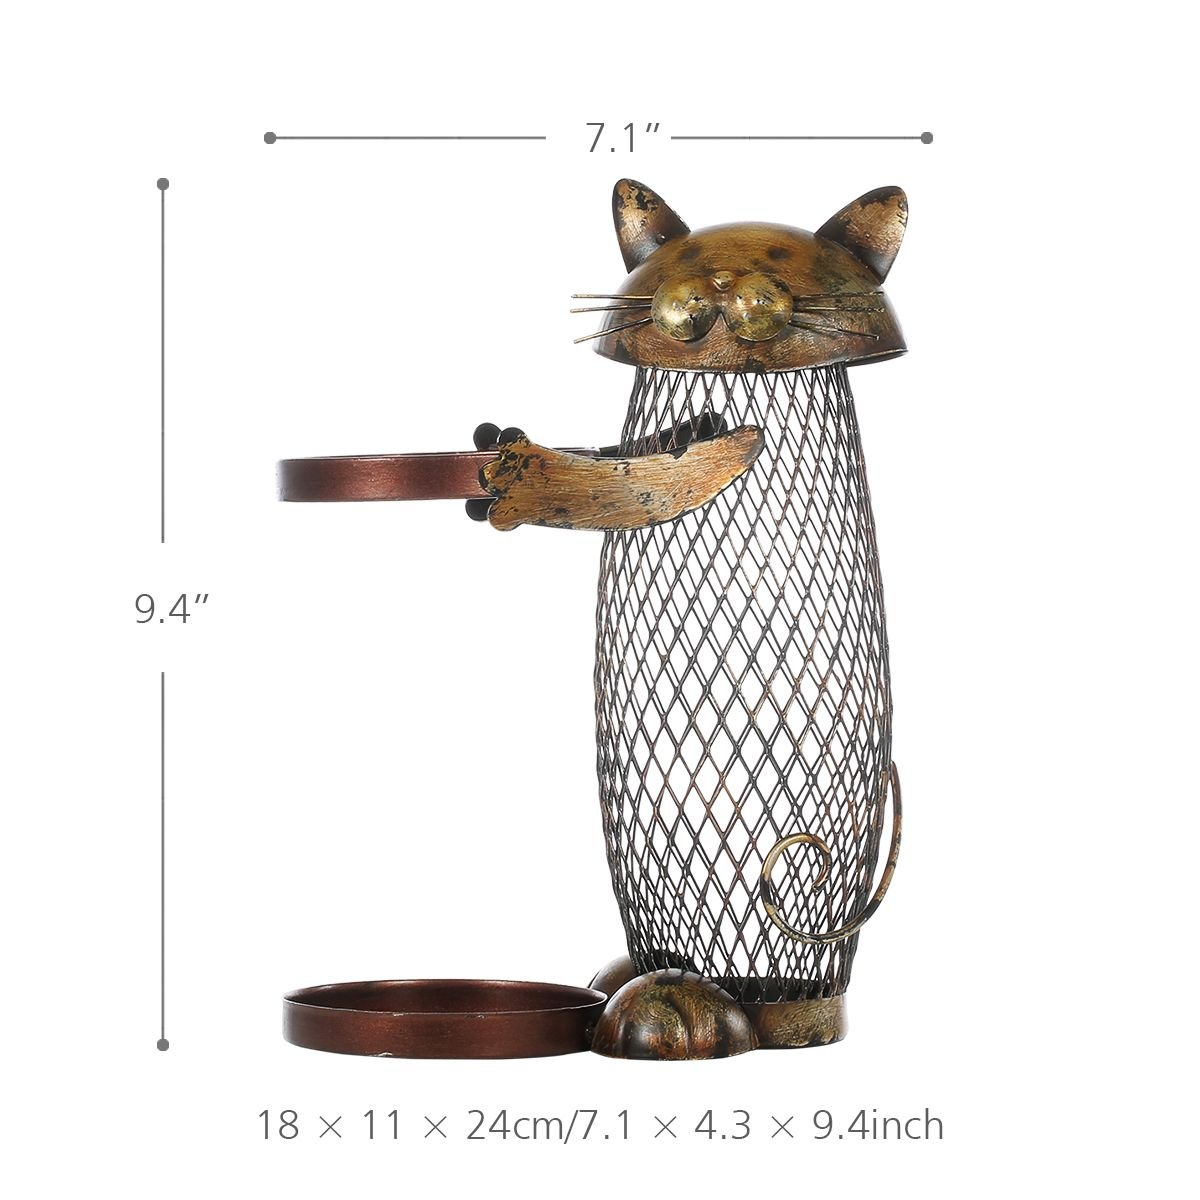 Tooarts Cat Wine Holder Cork Metal Wine Barrel Cork Storage Cage Table Cork Container Ornament by Tooarts (Image #5)